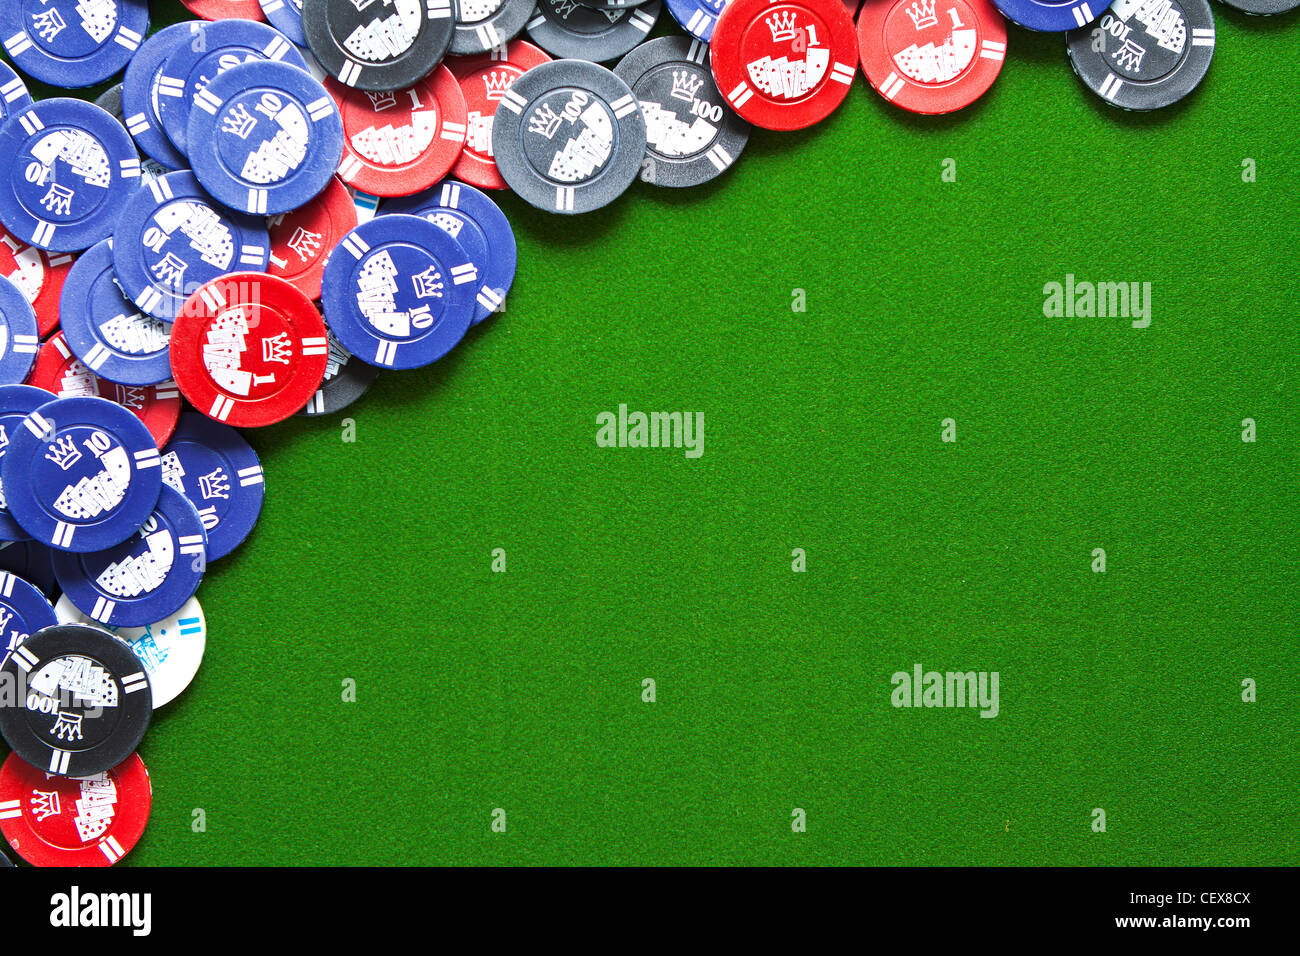 Colorful gambling chips on green felt background with copy space - Stock Image